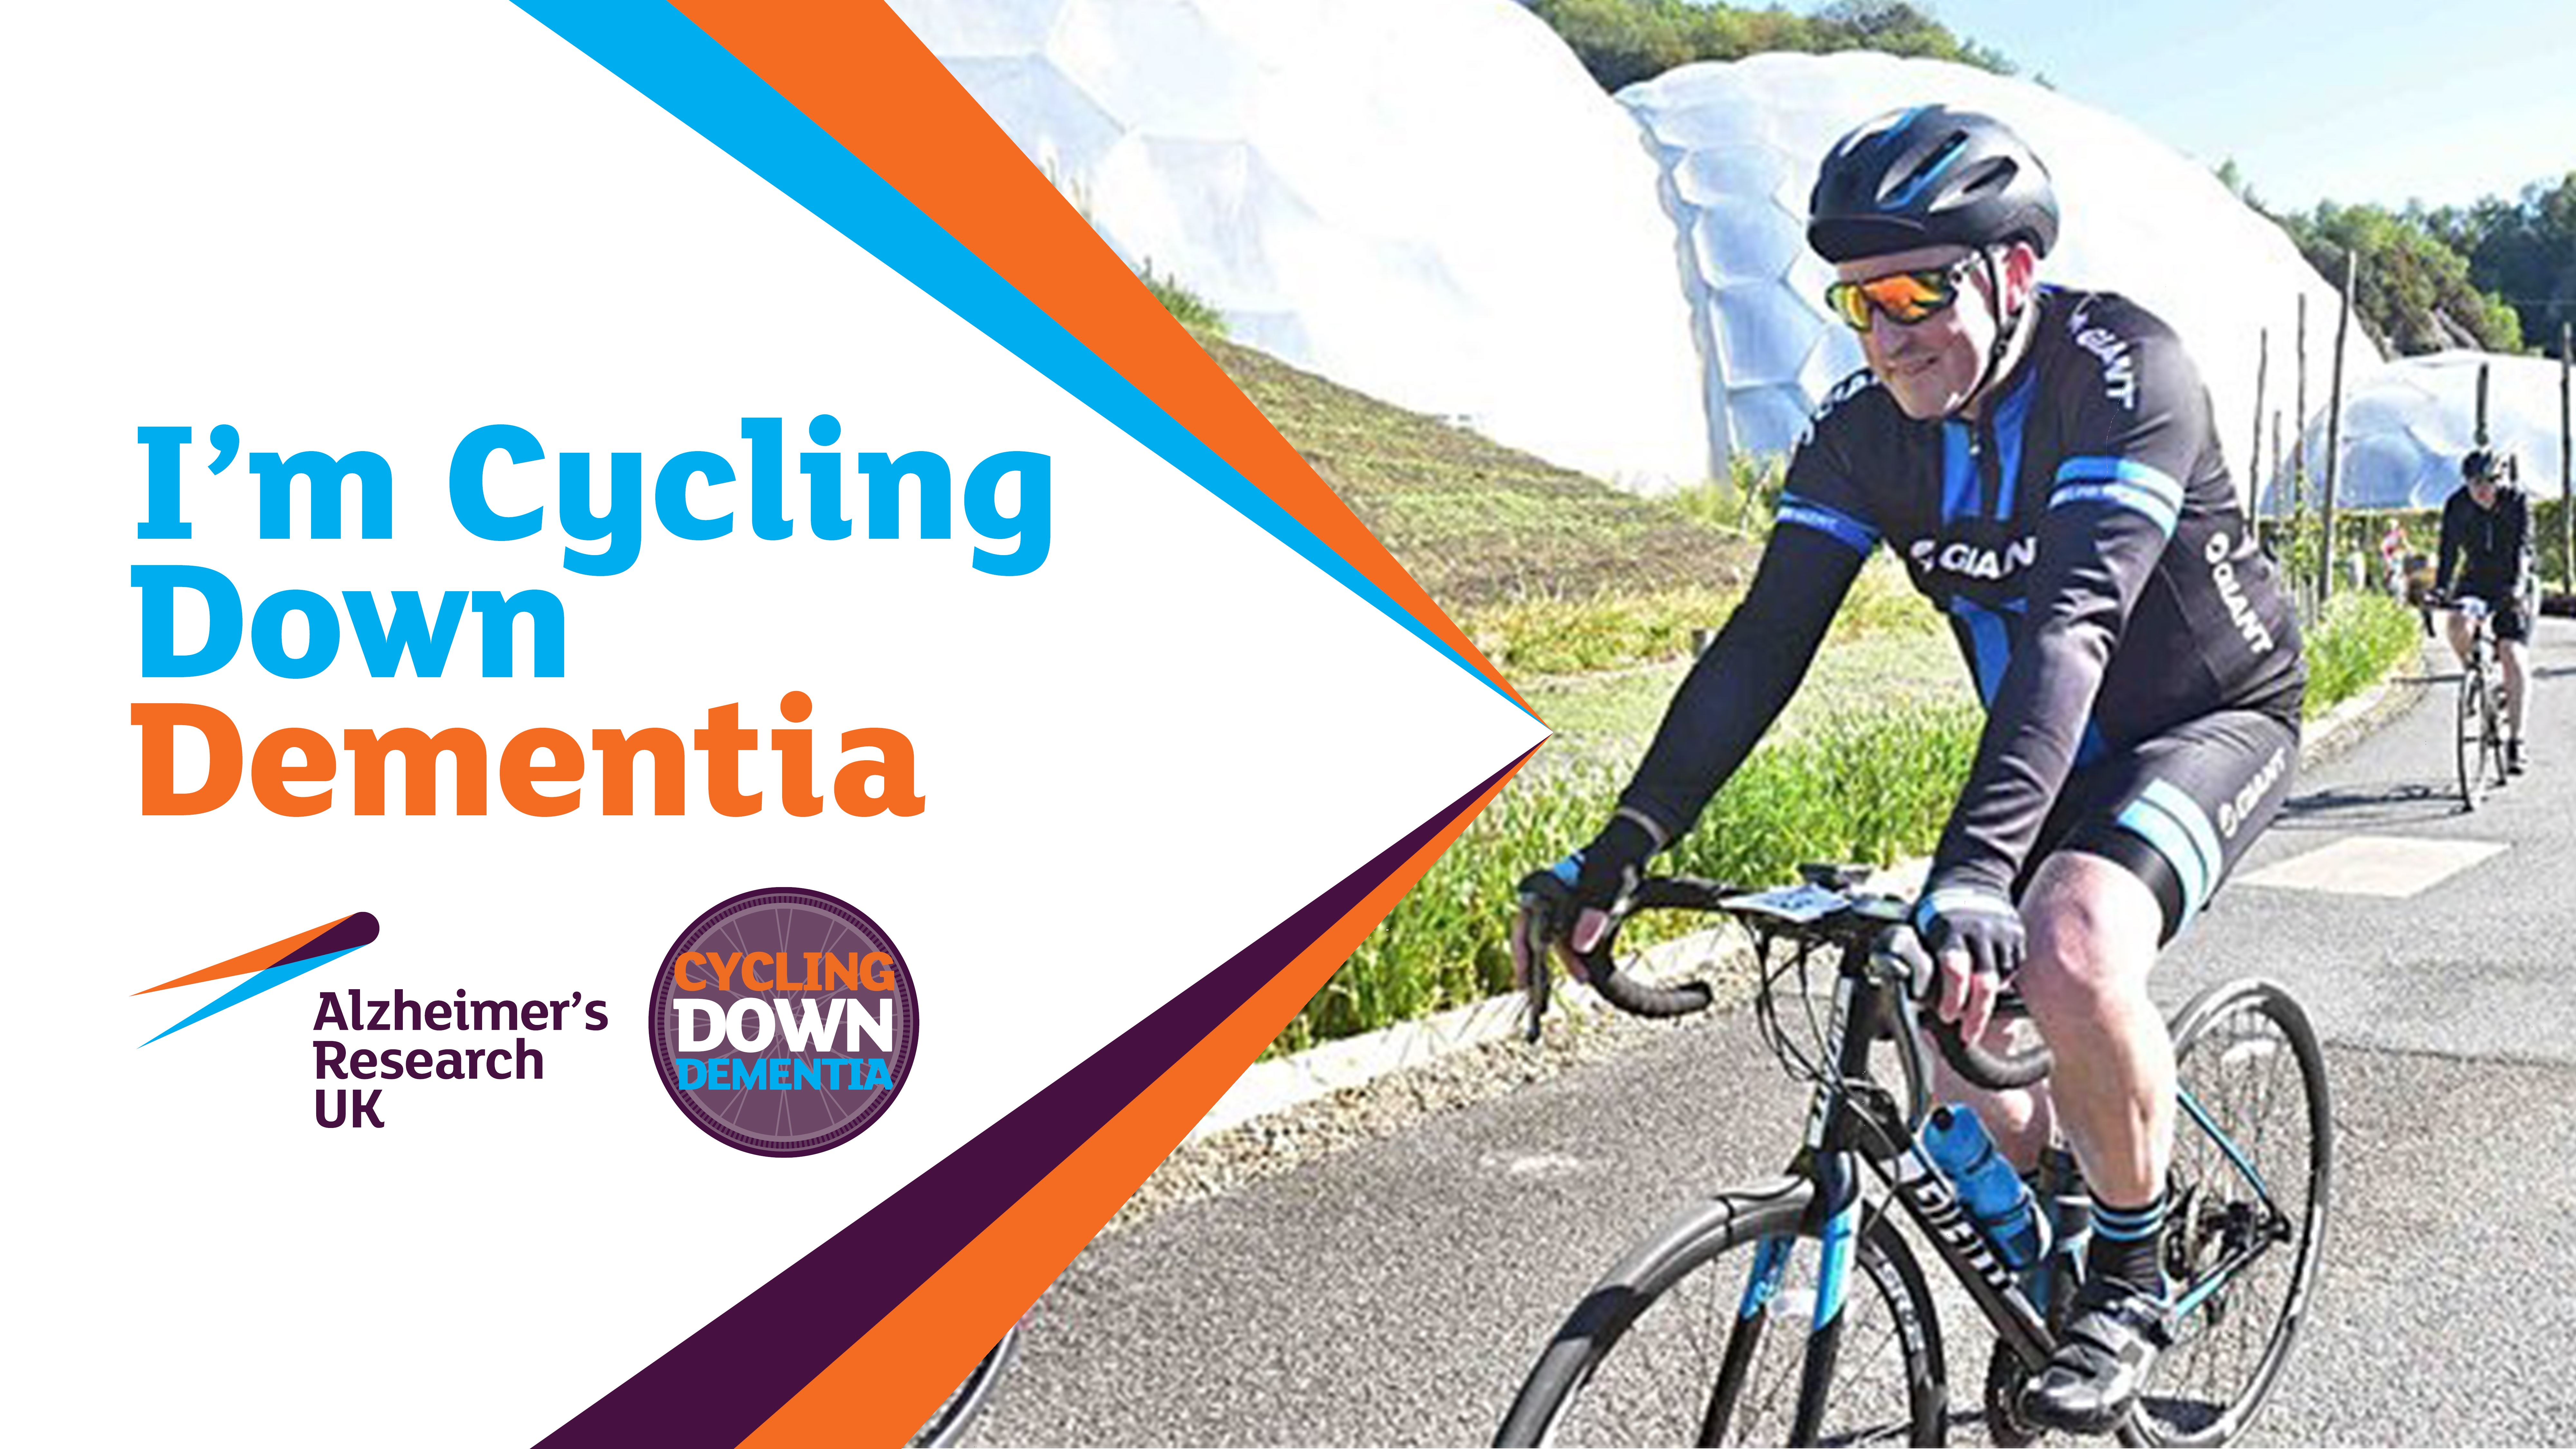 Cycling Down Dementia 2018 The Epic Challenge - 1,000 miles for Alzheimer's Research UK